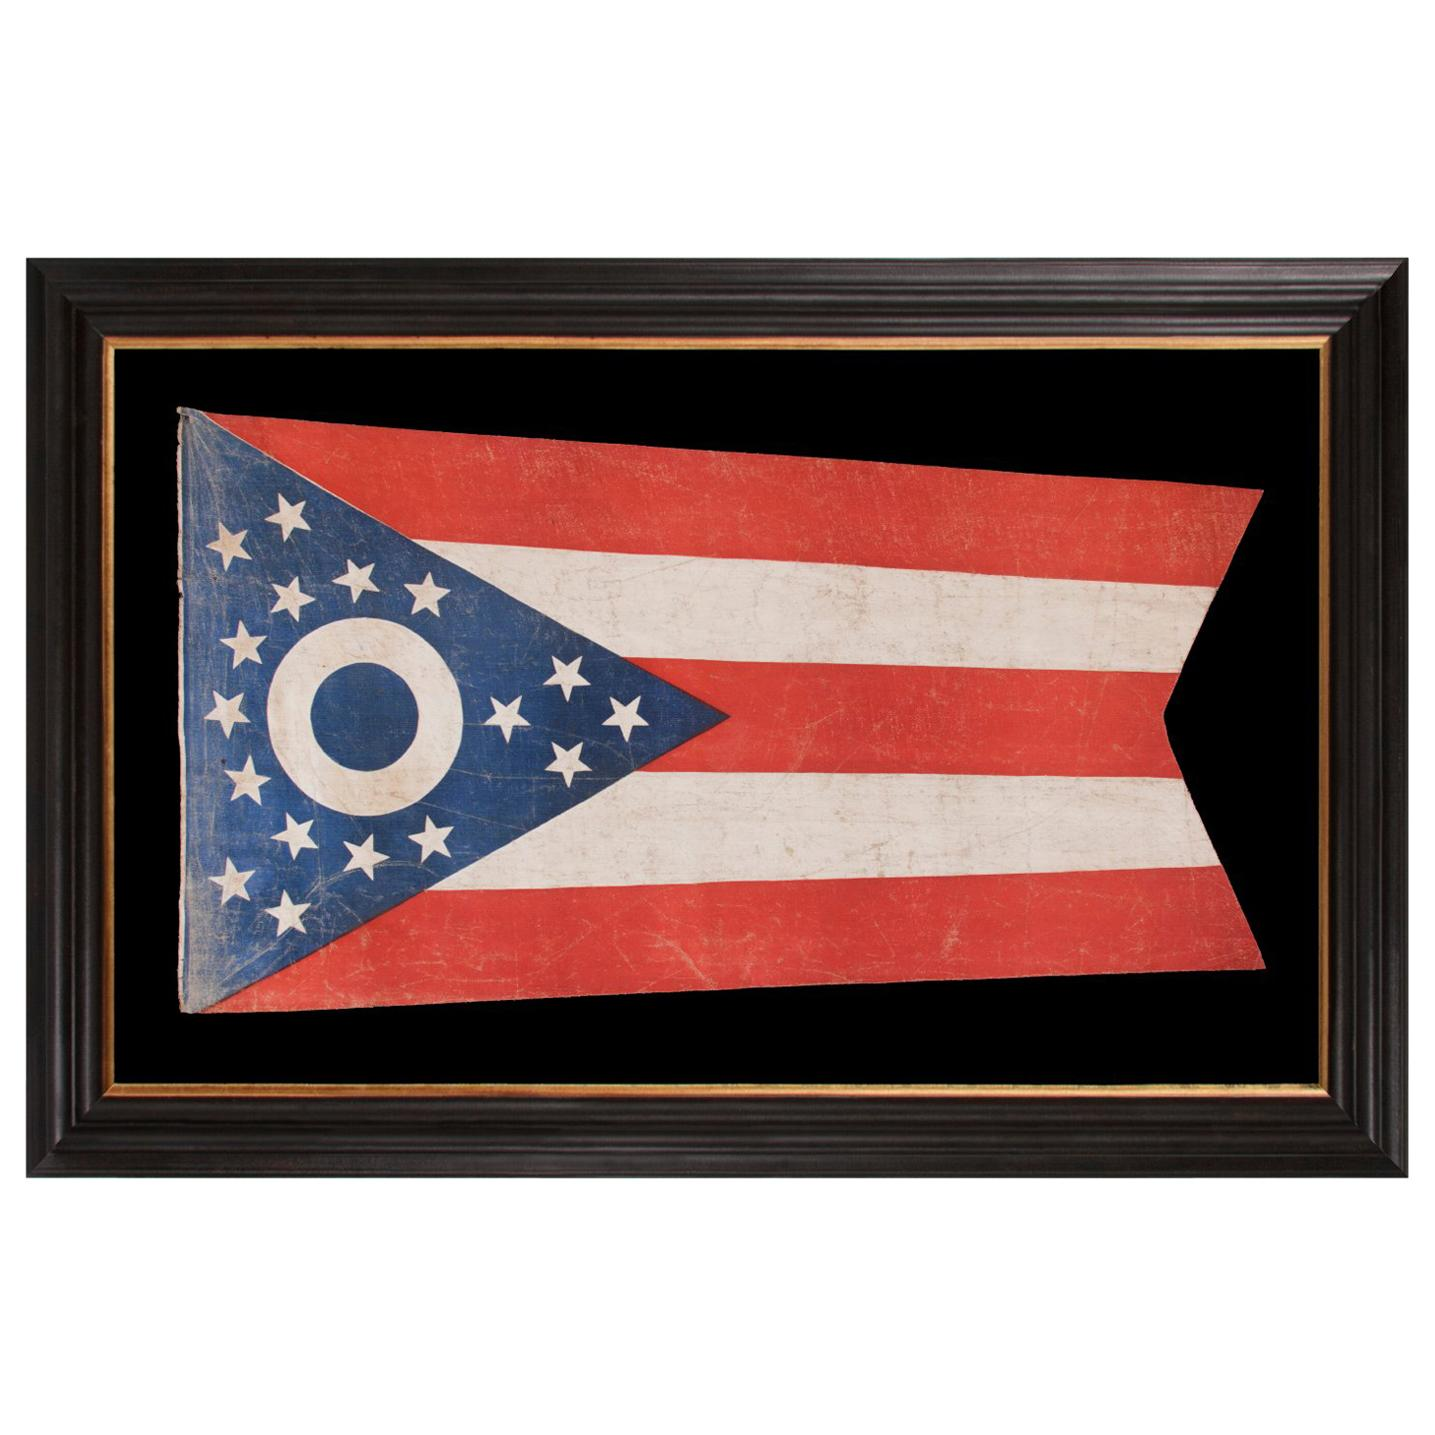 Early Ohio State Flag with a Blue Disc Inside the Buckeye